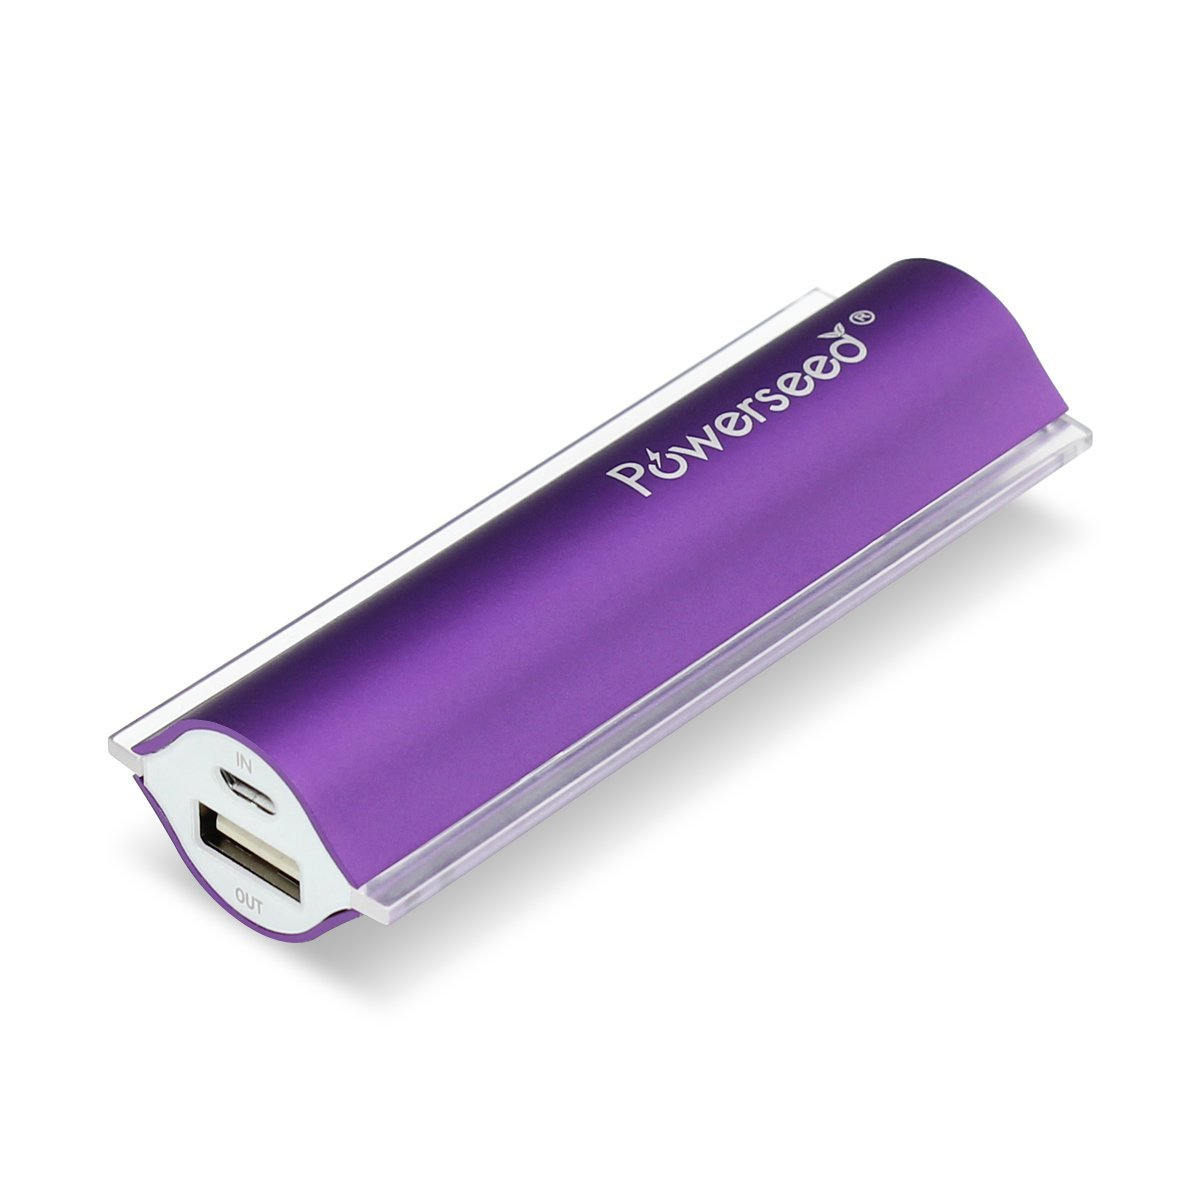 Powerseed Angel Eye PS2400 Purple Power Bank USB Portable Charger for Samsung Galaxy S6, S5, Samsung Gear, Note 4, Apple Watch, iPhone 4, iPhone 5, iPhone 5S, iPhone 5C, iPhone 6, iPhone 6 Plus, Android Phones, iPad, Android Tablet, Windows Tablet, Go Pro Hero Camera, PSP, Nintendo 3DS, Sony